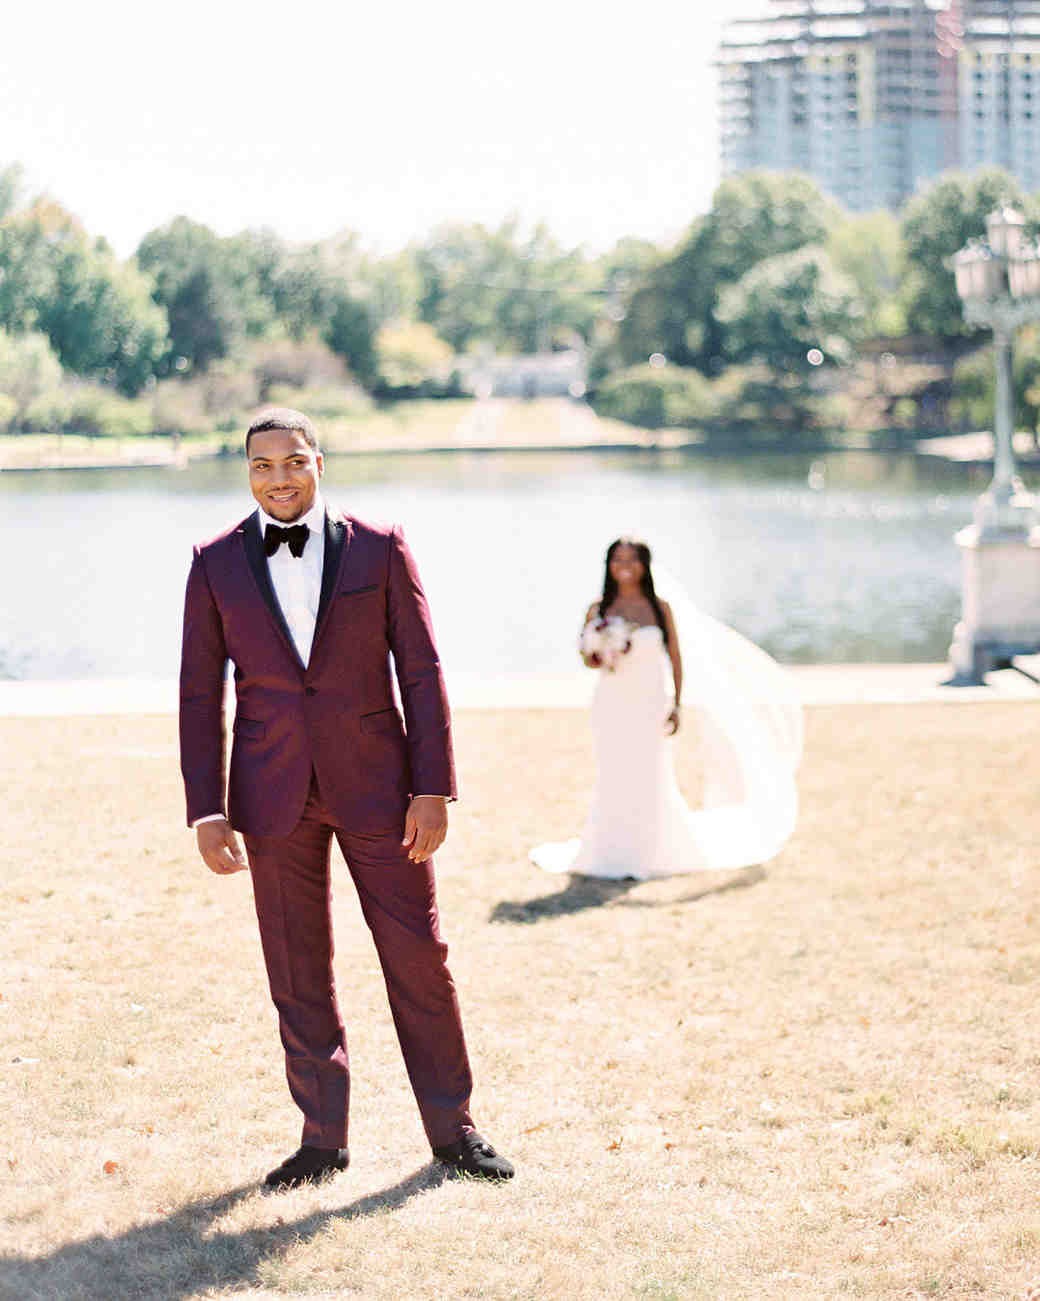 shanice & stephen wedding first look